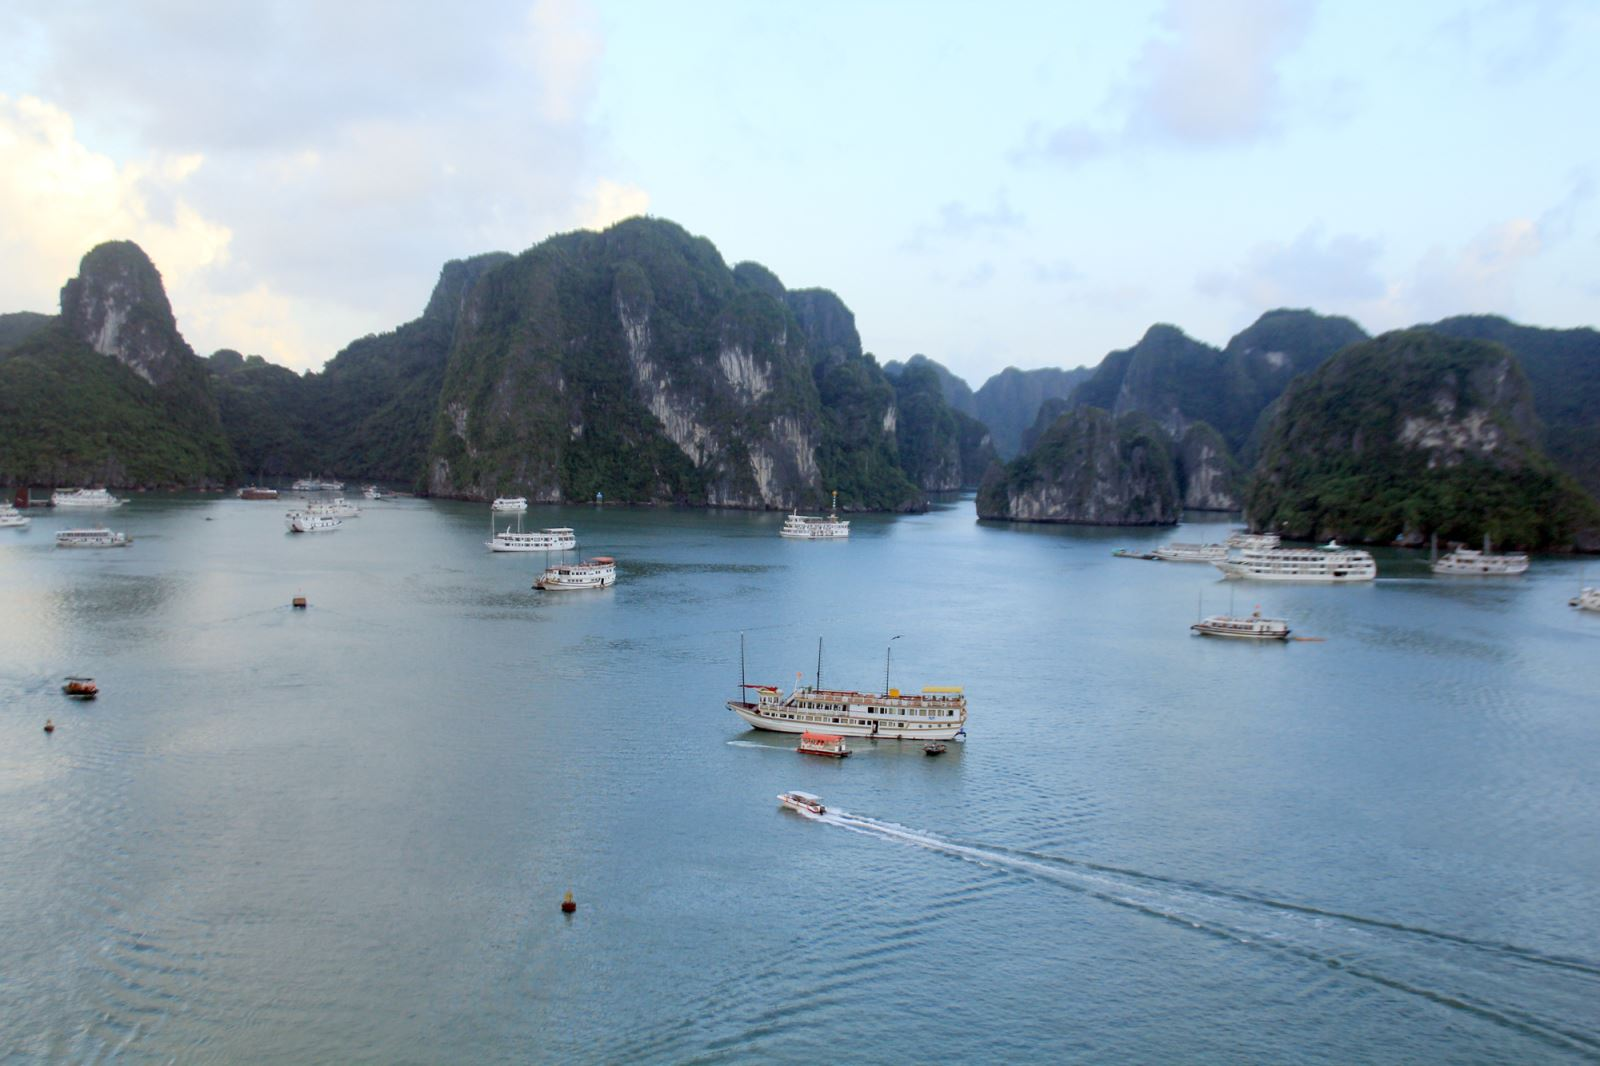 halong bay view.jpg